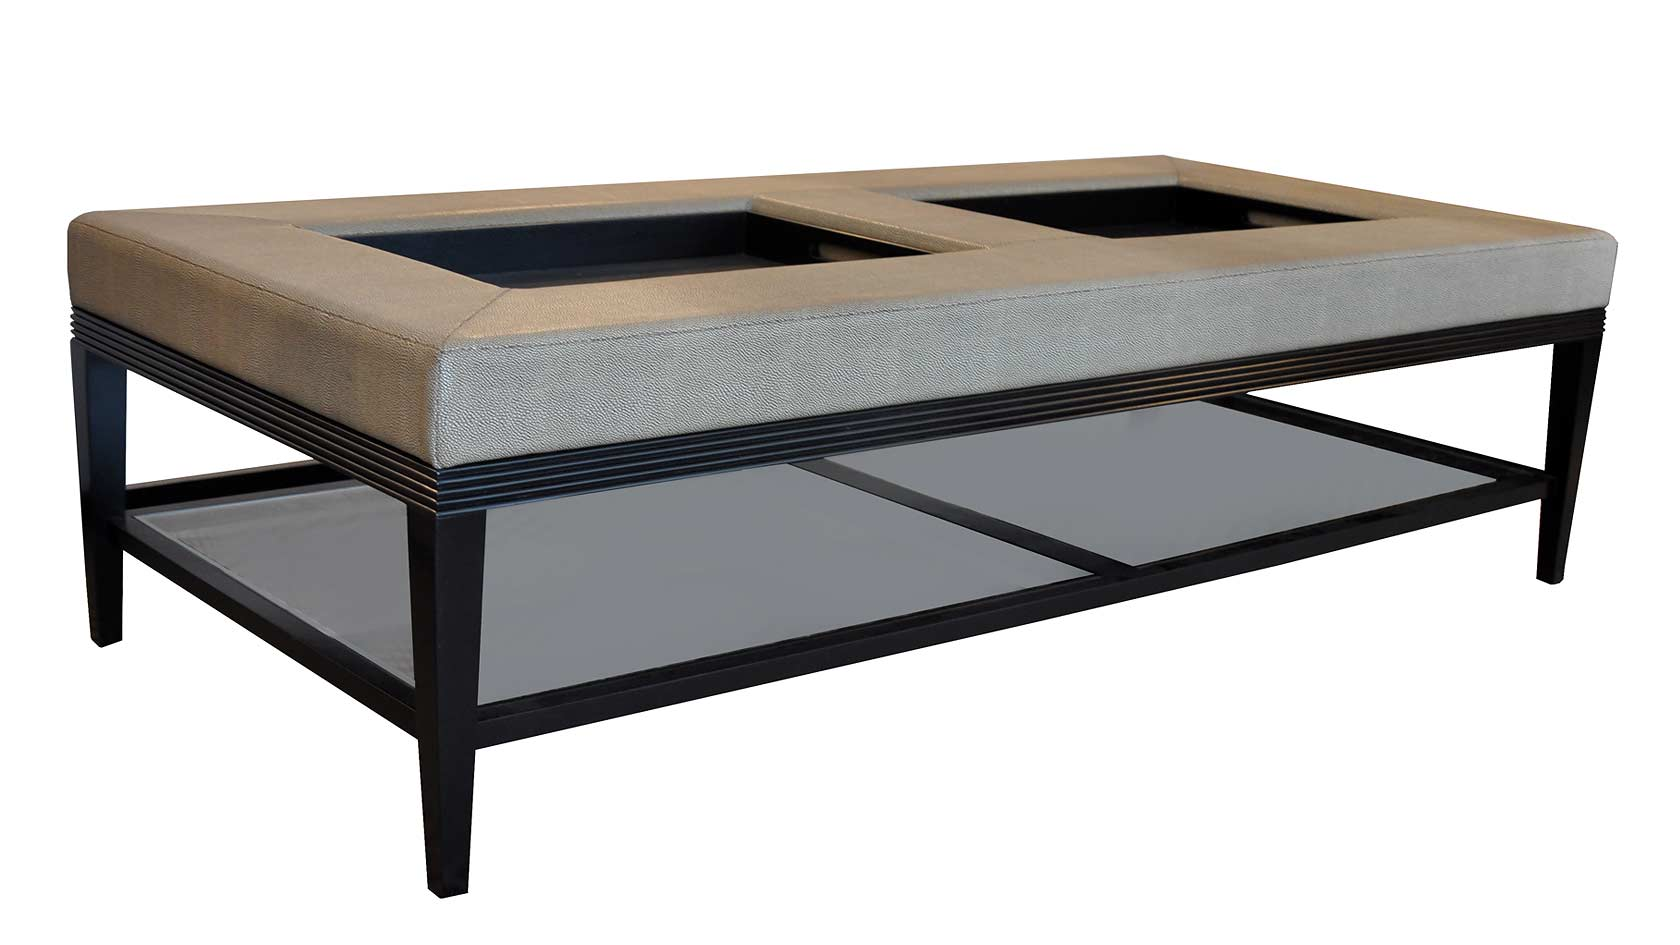 Plush home carlisle double coffee table ottoman Ottoman bench coffee table